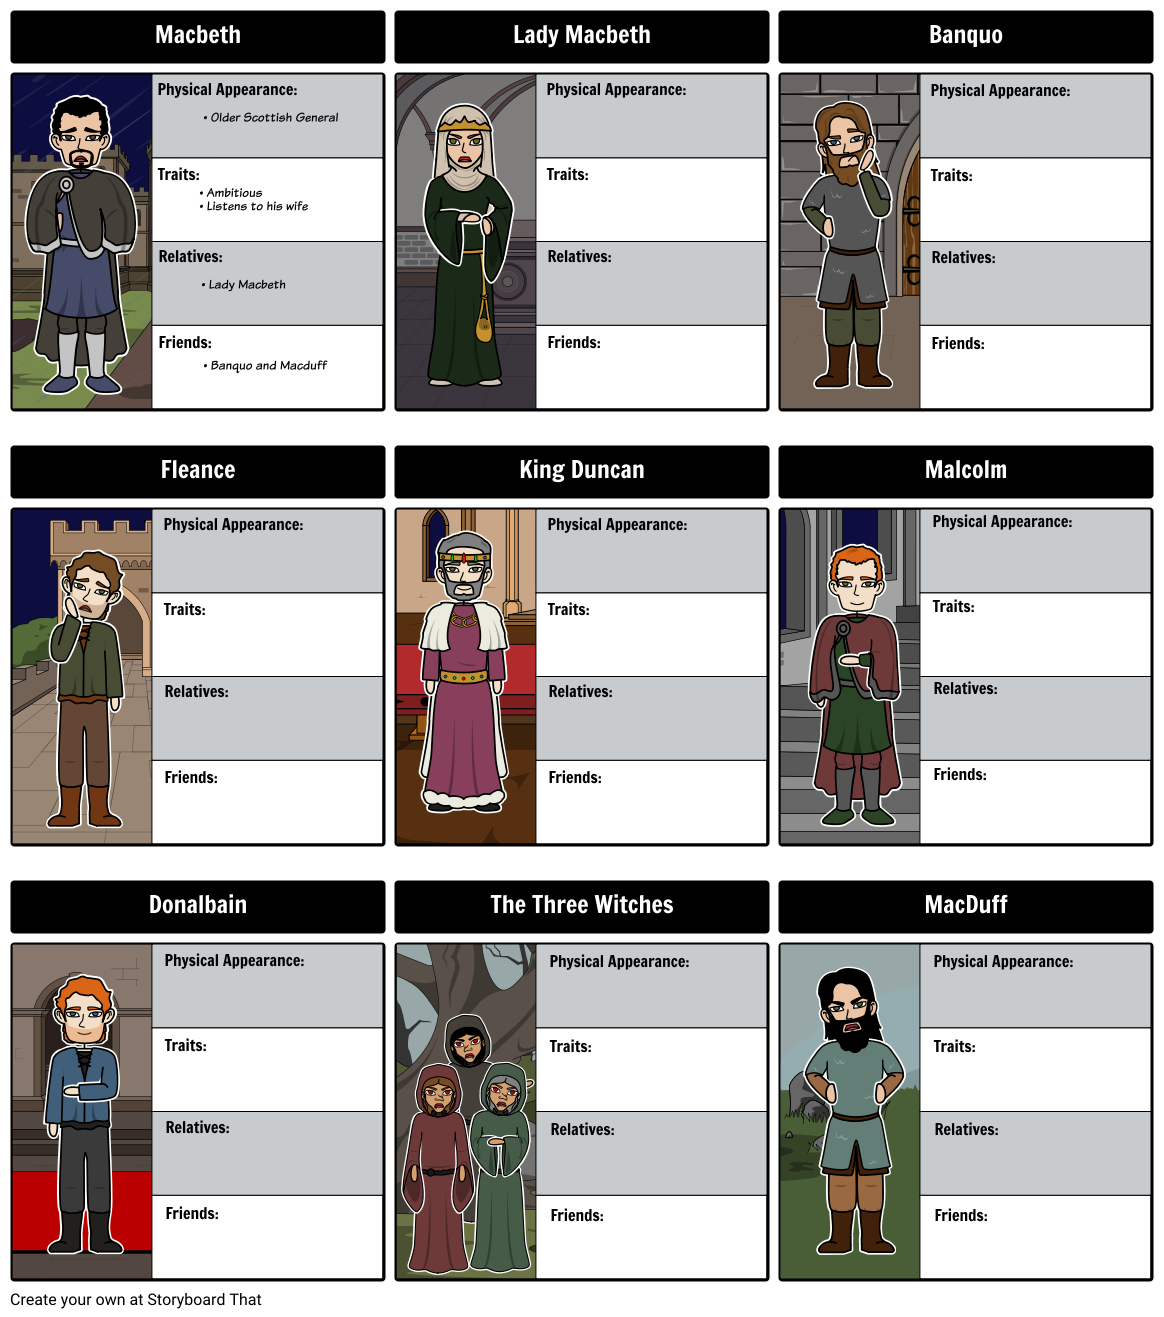 Macbeth Characters  Lady Macbeth in a Character Map graphic organizer  Macbeth Physical Appearance  Traits. Macbeth Characters  Lady Macbeth in a Character Map graphic